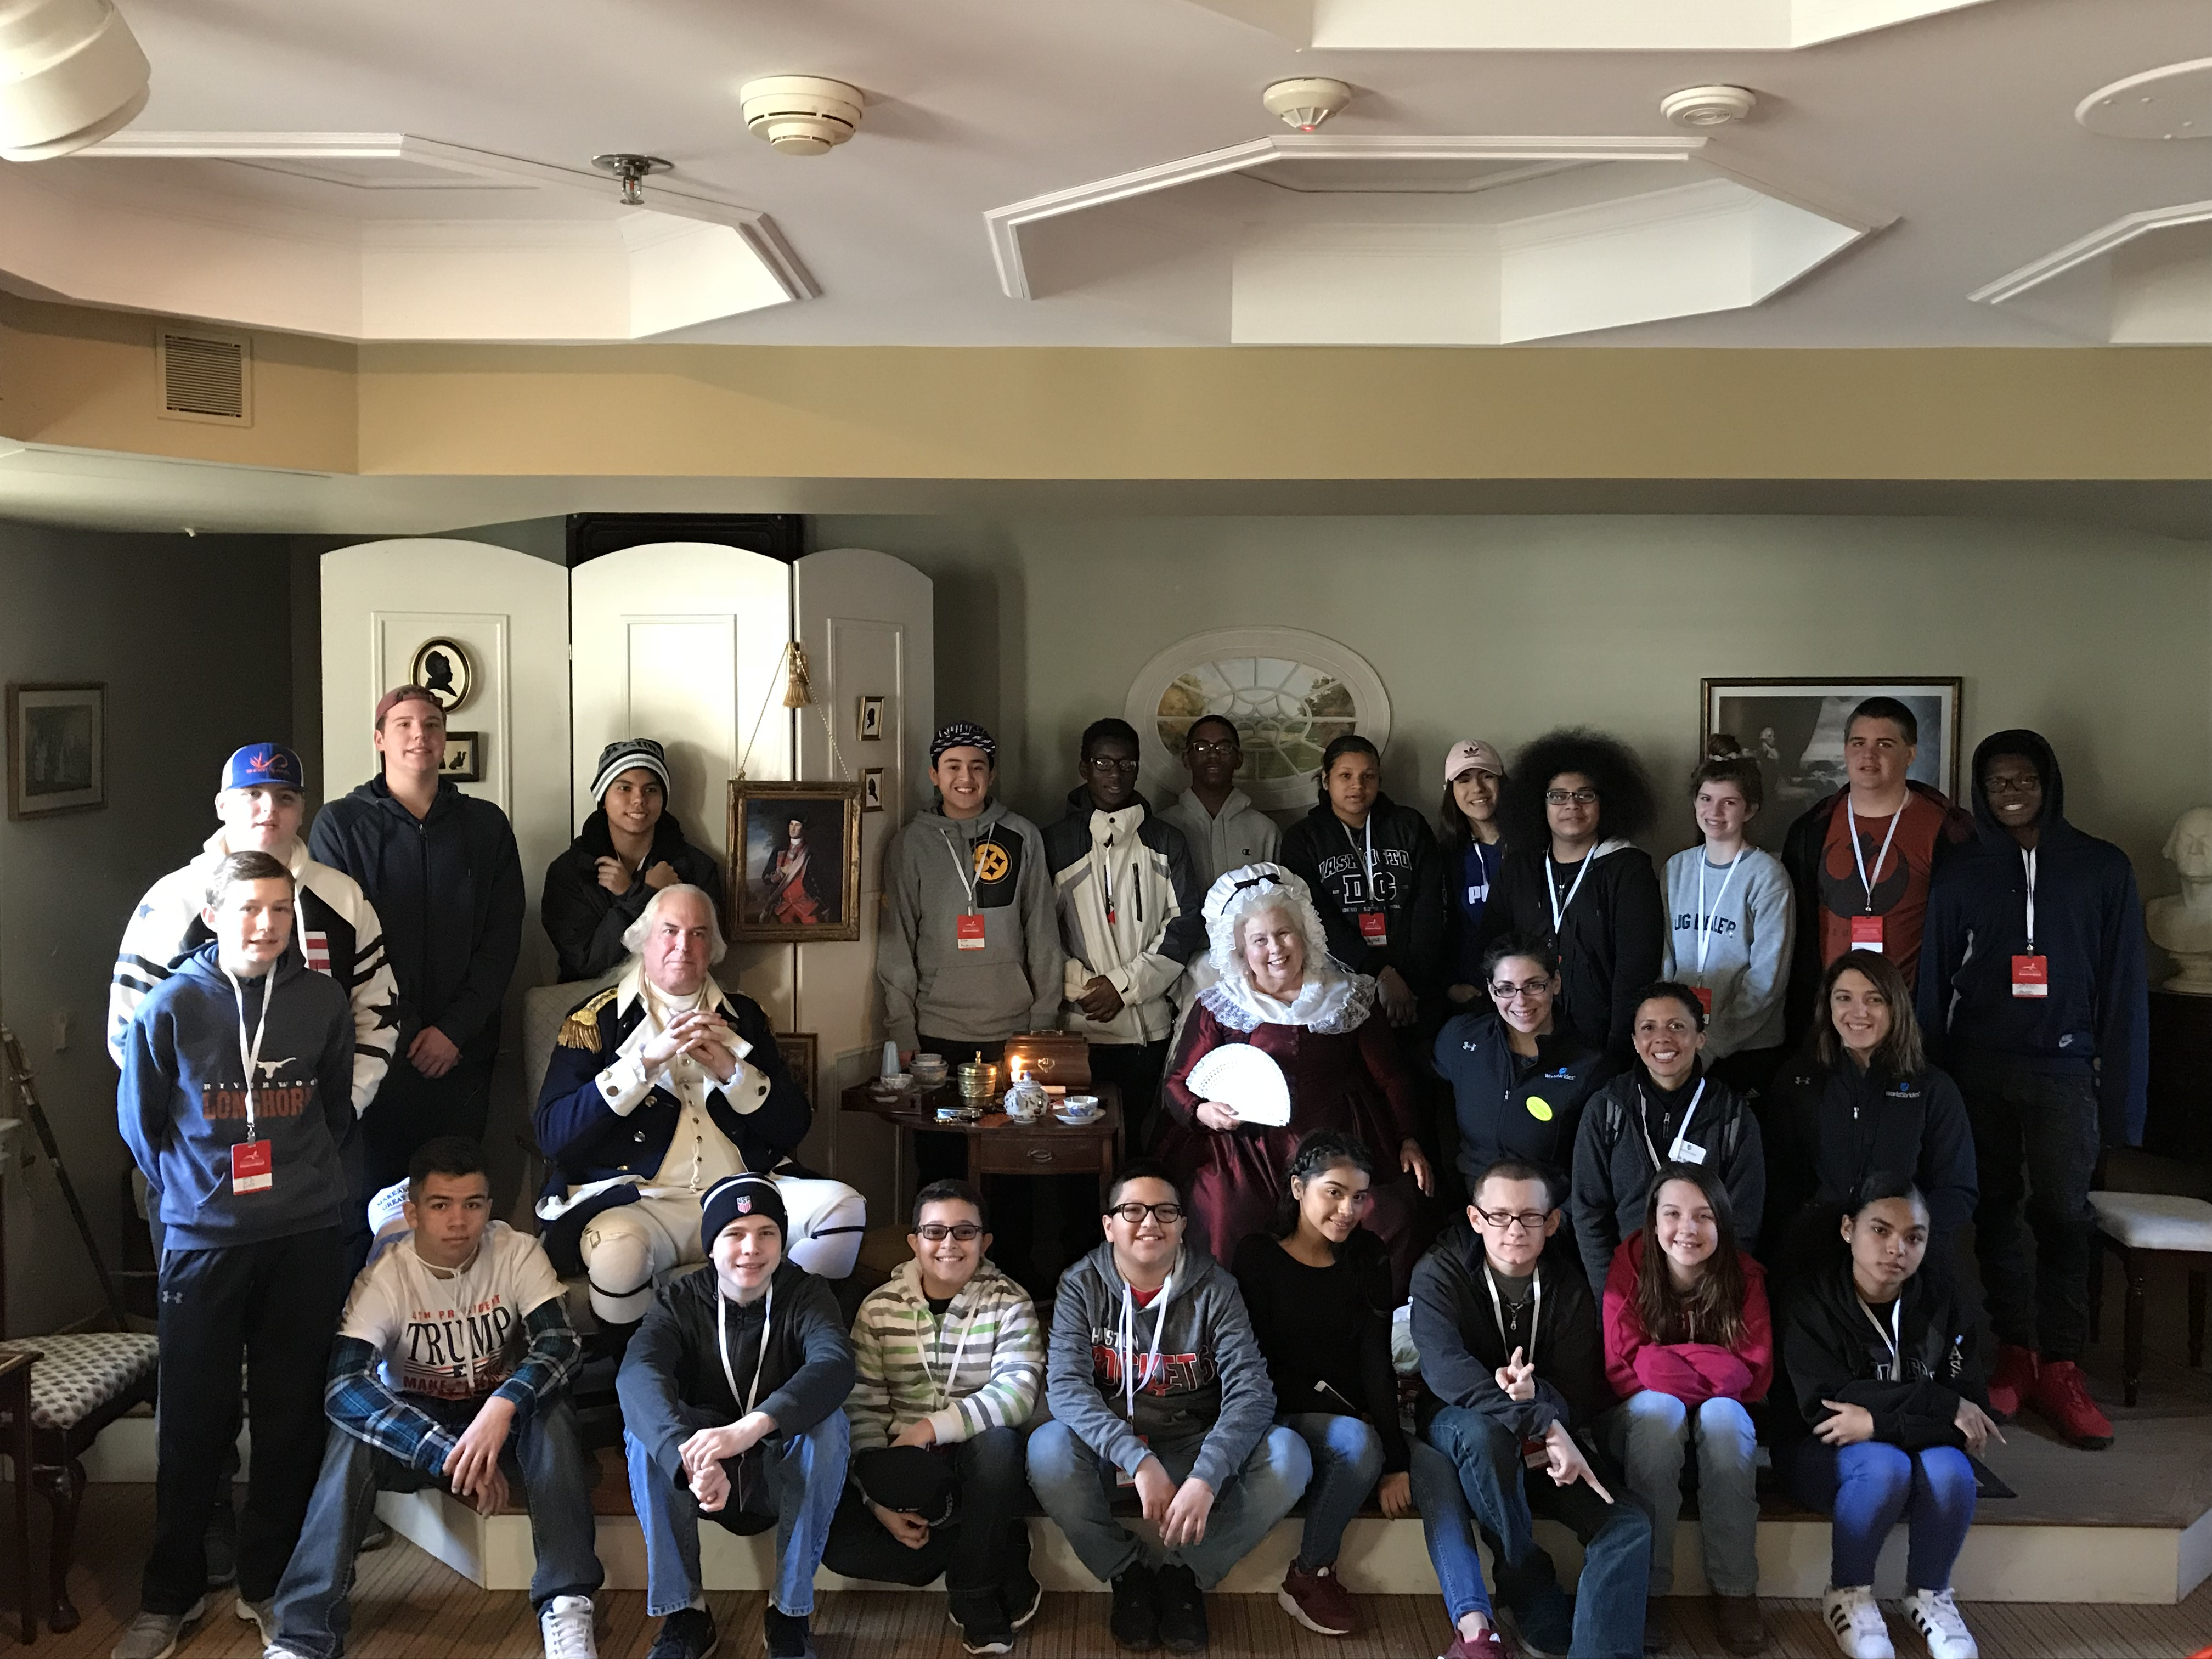 Students meeting General and Mrs. Washington at Mount Vernon.